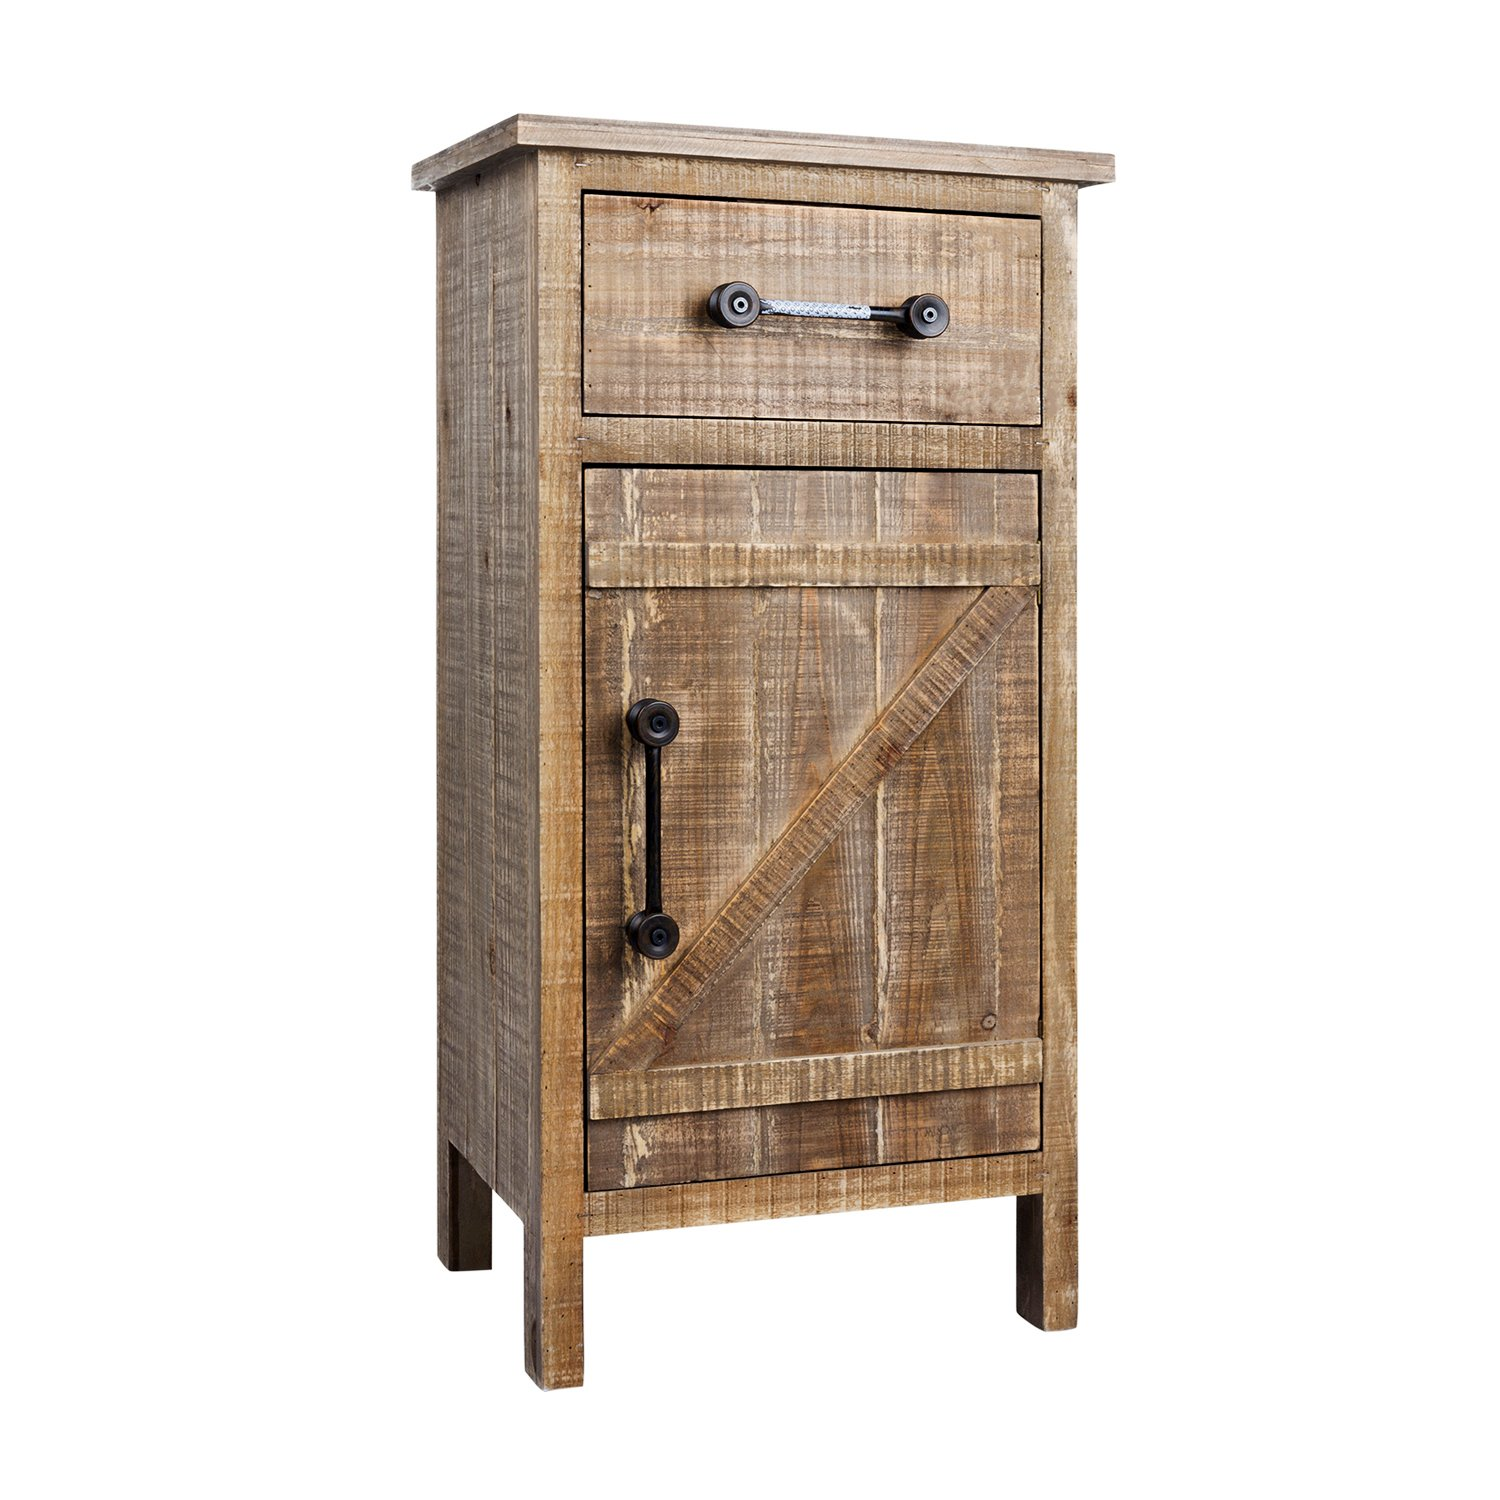 Amazoncom Rustic Wood Console Cabinet Distressed Farmhouse Wooden